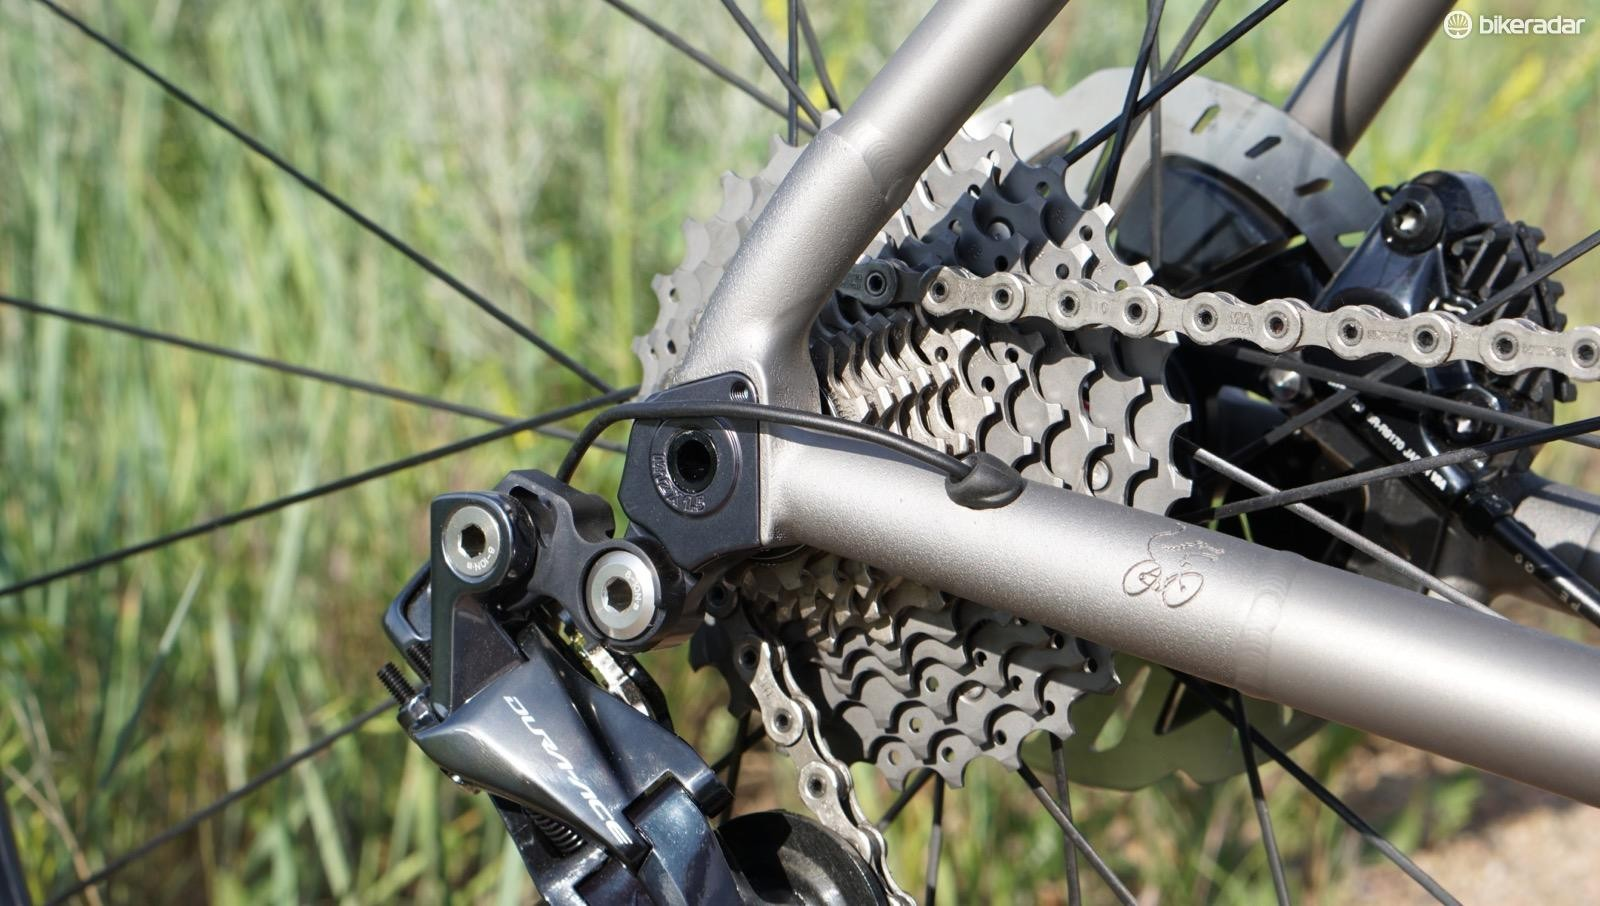 3D printed dropout — not something you'd find on an old-school ti bike